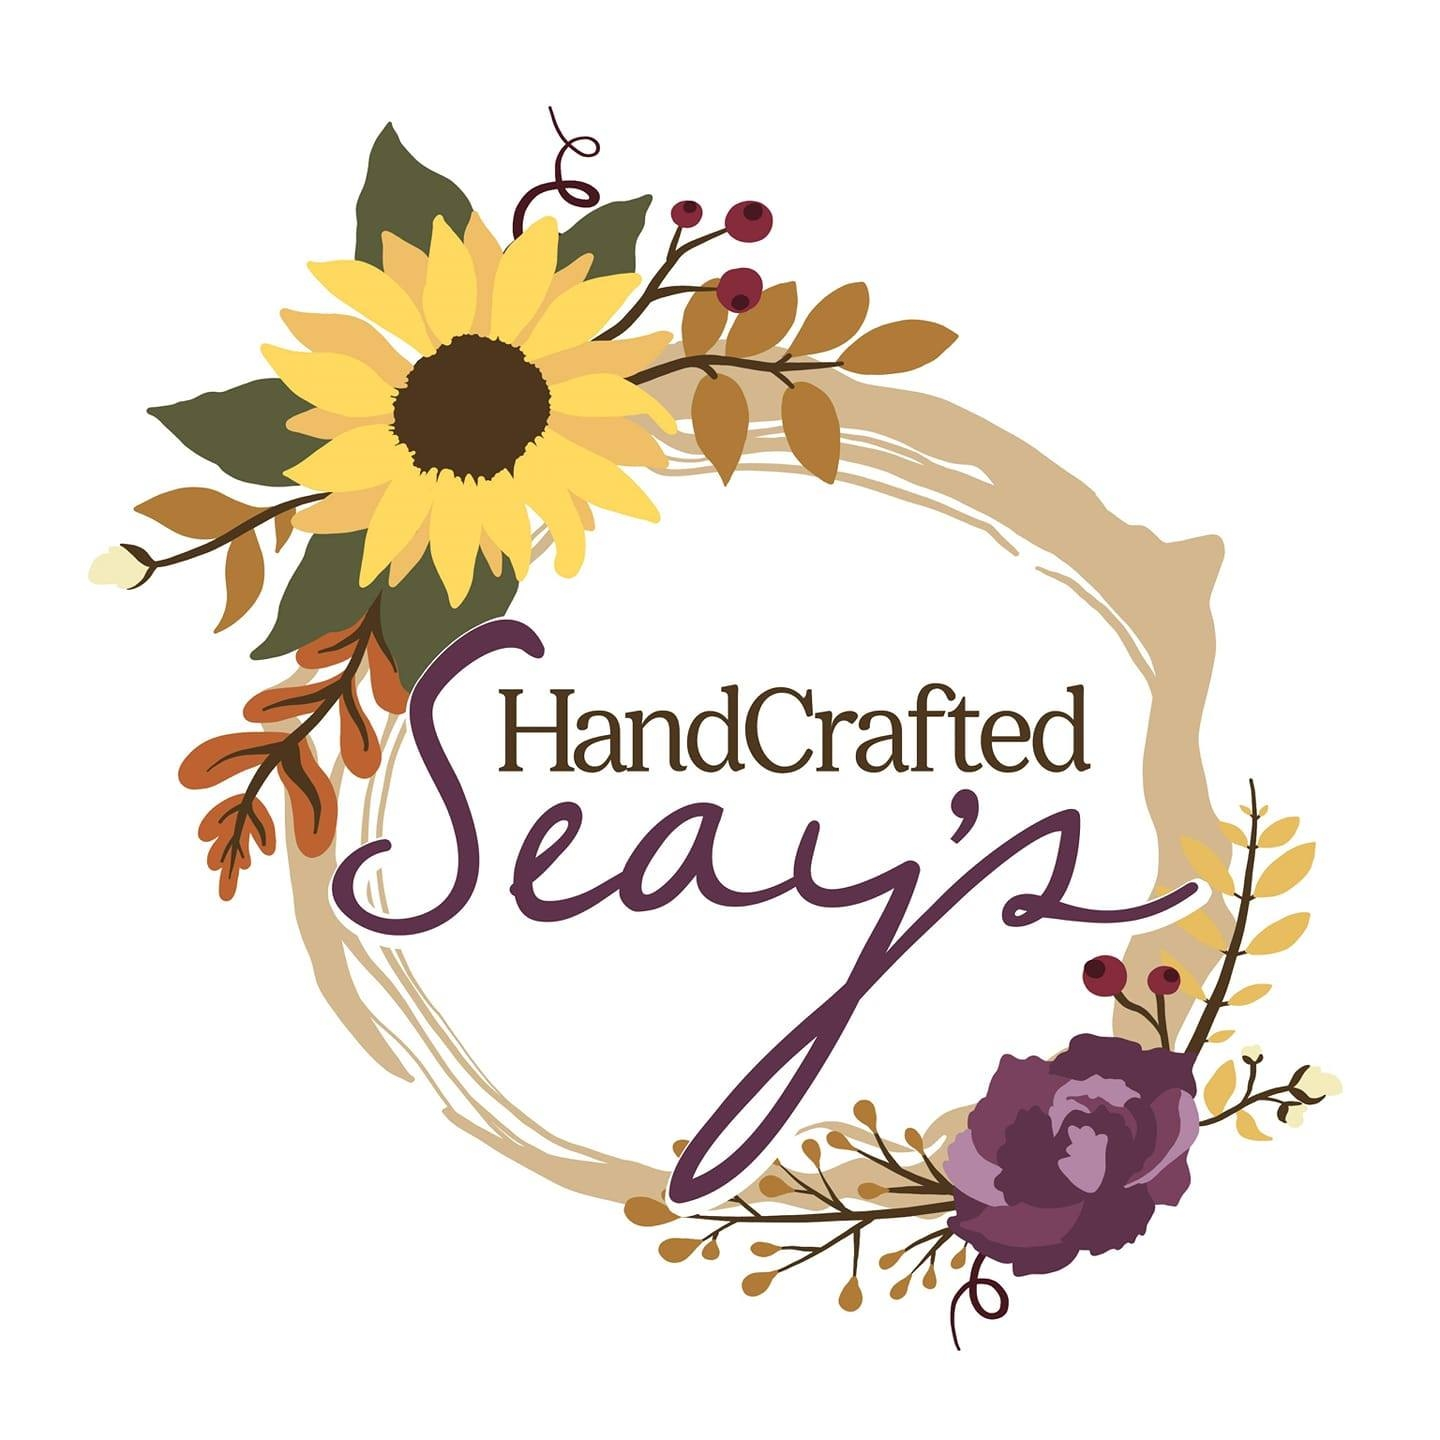 Handcrafted Seay's